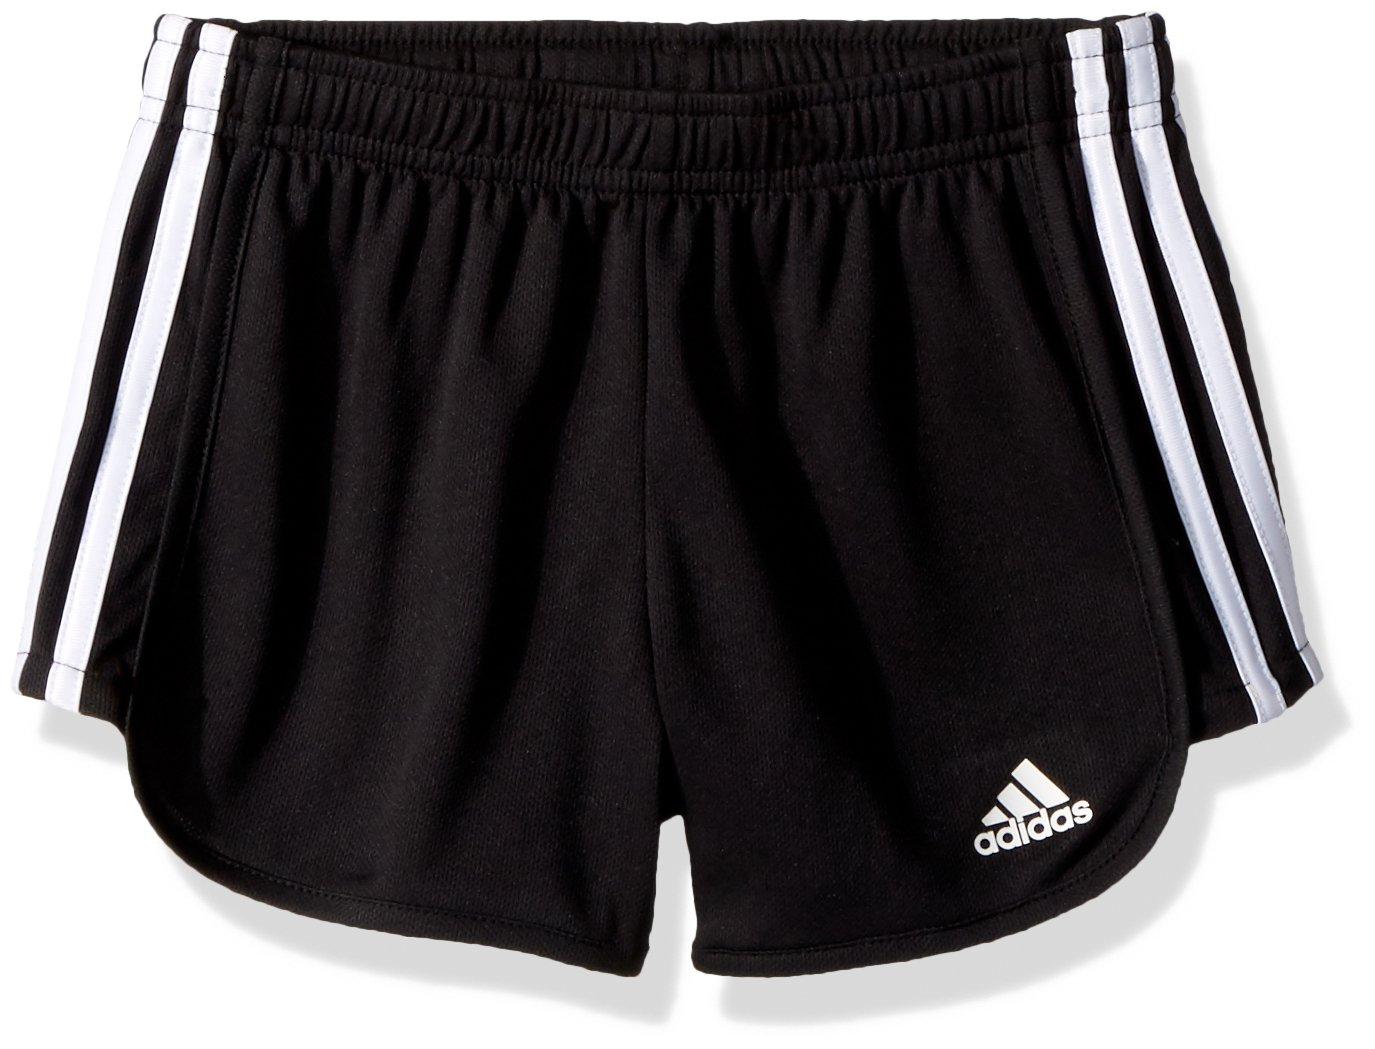 adidas Big Girls' Athletic Shorts, Black Adi, Medium